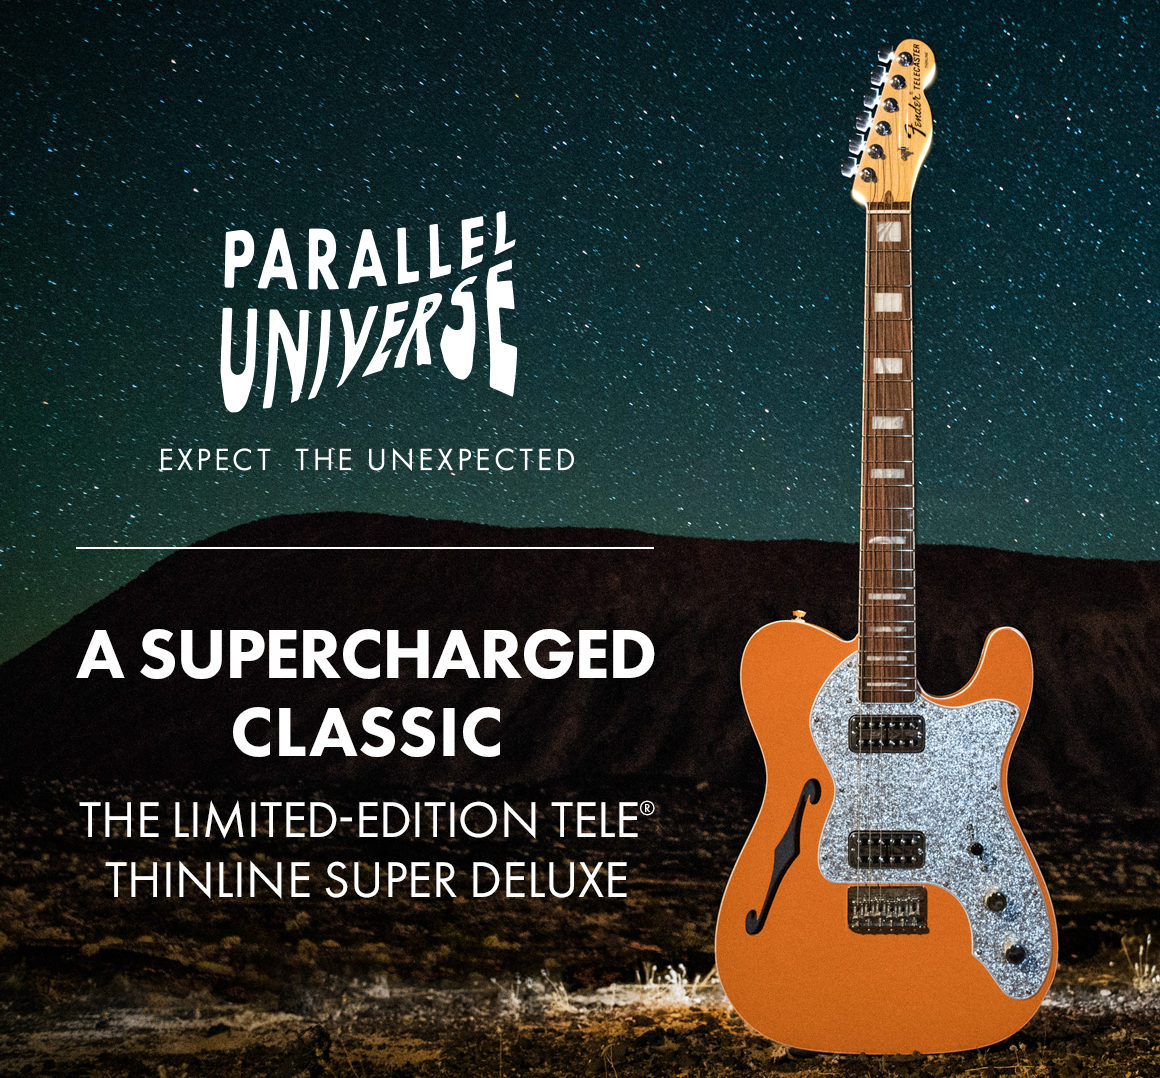 Parallel Universe. A super charged classic